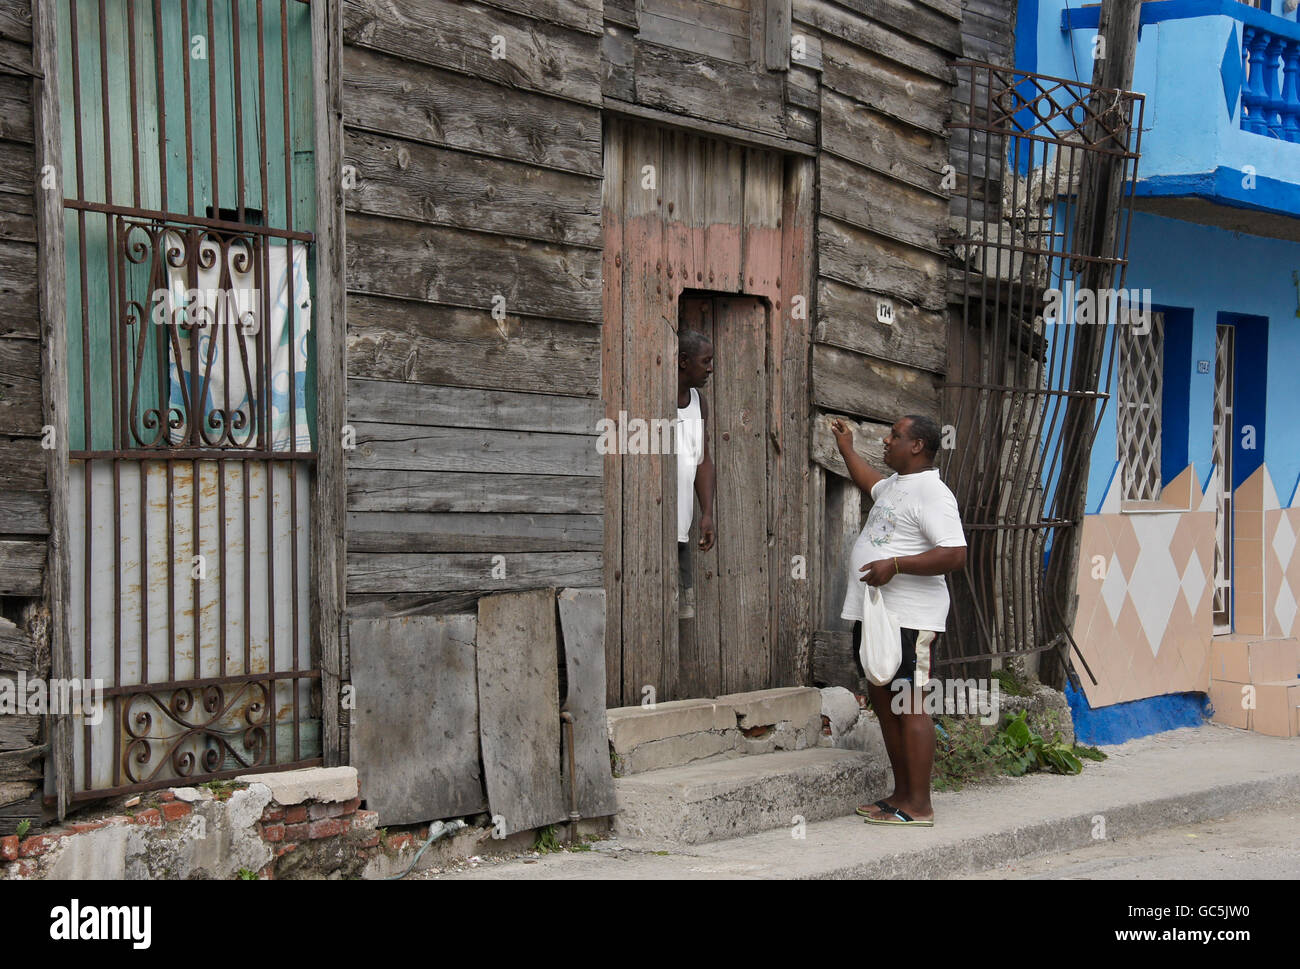 Two homes in Regla, Cuba, one in disrepair, one renovated and well maintained - Stock Image